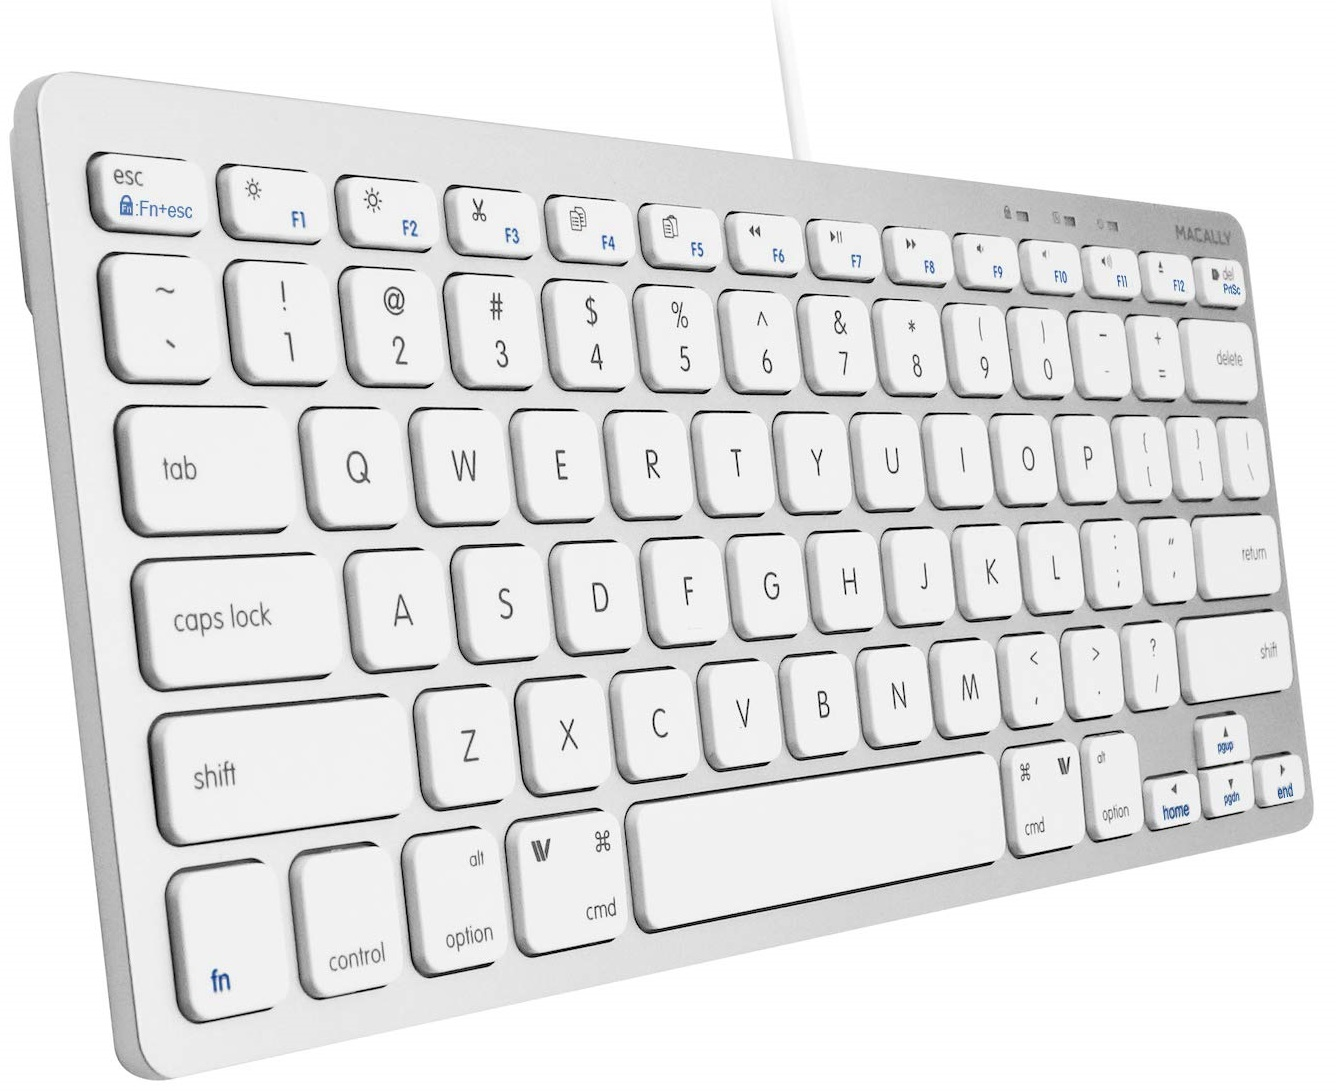 Macally compact wired keyboard